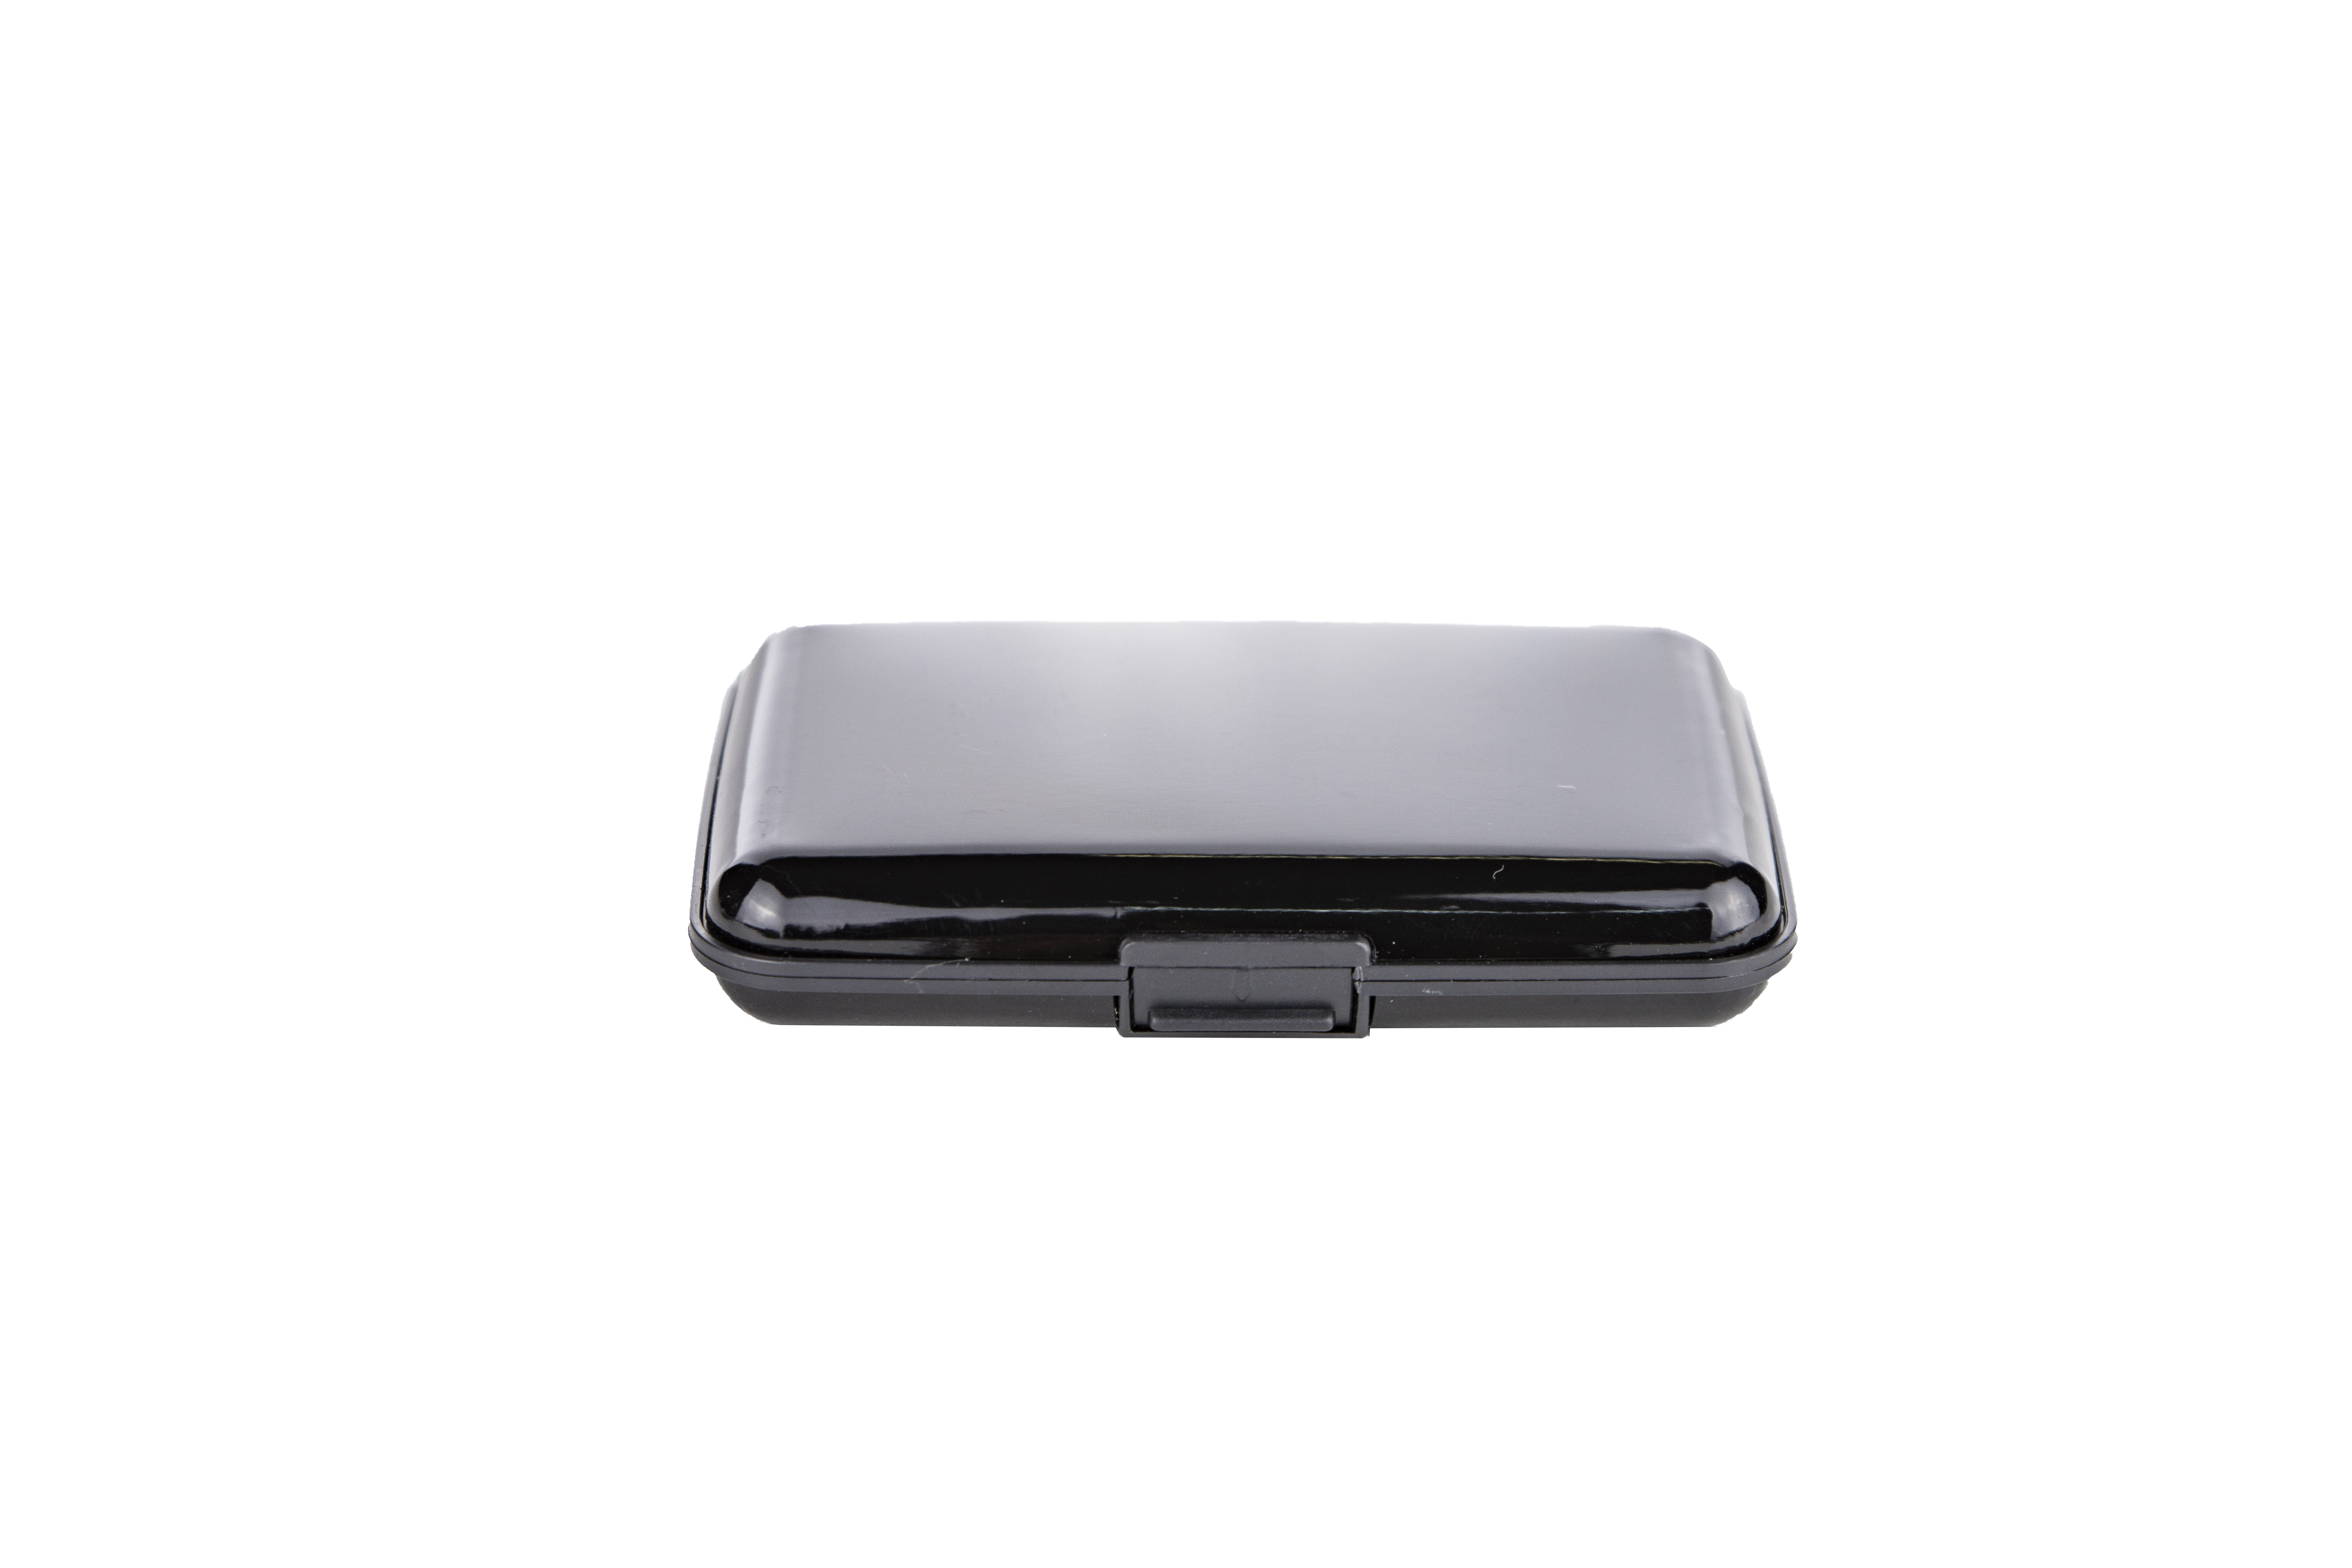 Vape Case Incl Buttonless Battery Usb Charger 1 Slot Baterai Included Black Zoom Images